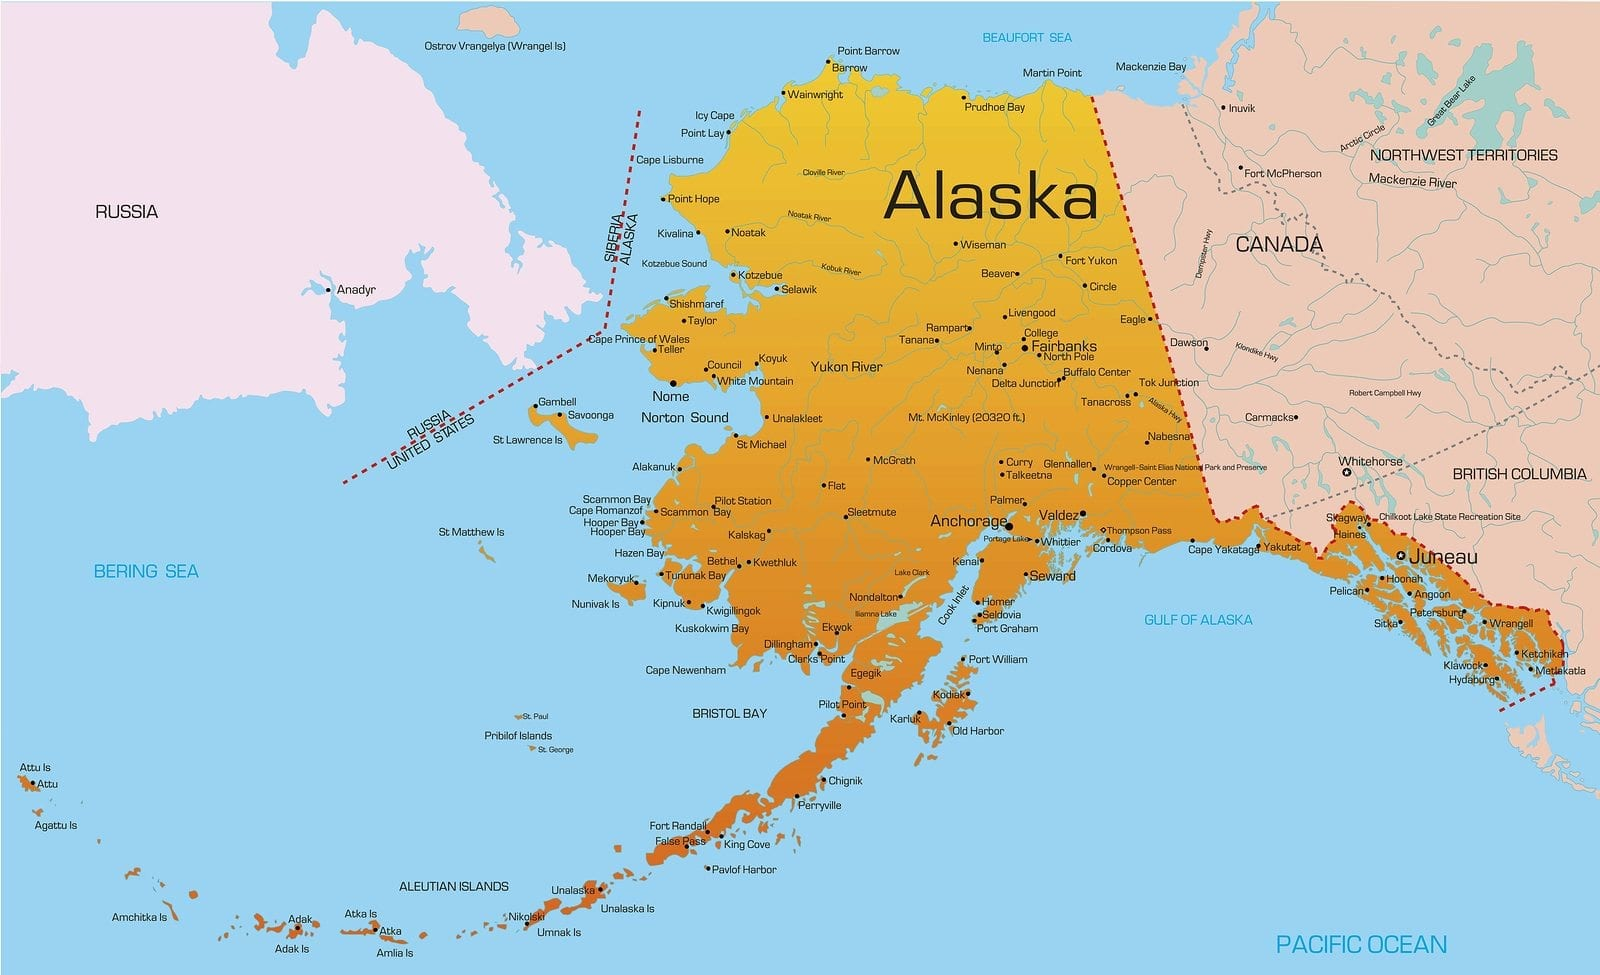 alaska pharmacy technician requirements and training programs